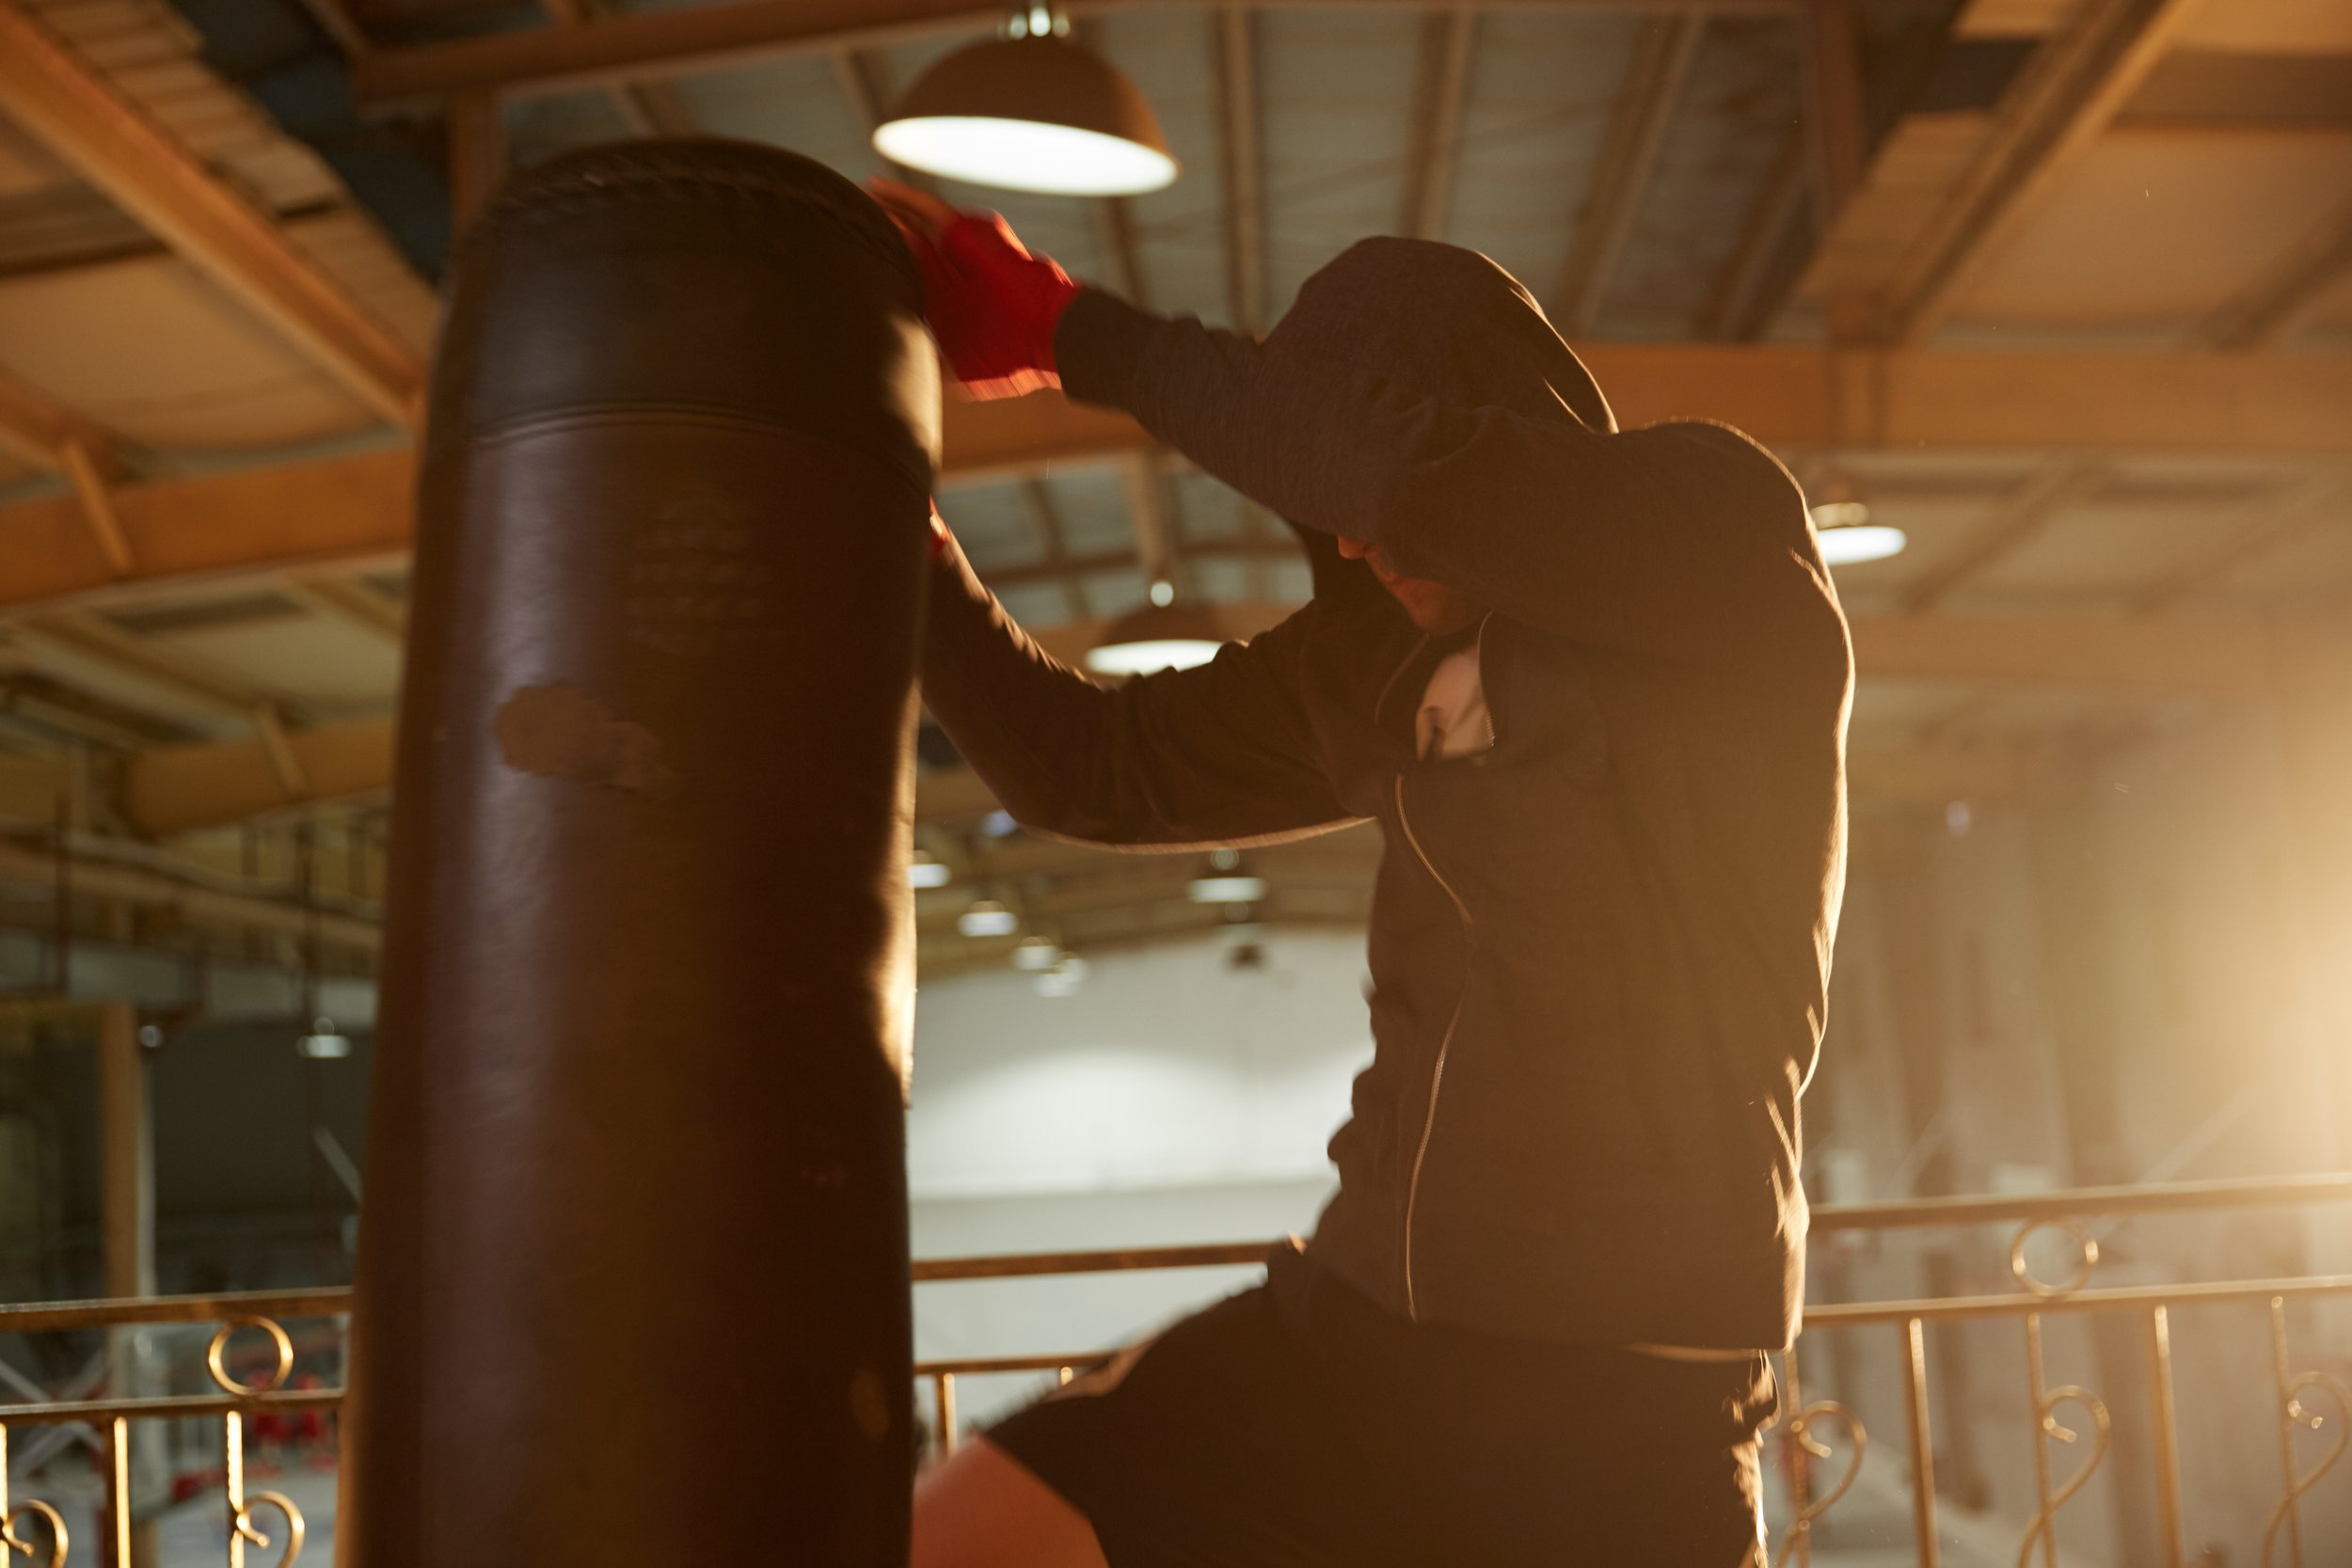 Thai Kickboxing - A fun combat style class designed to increase your fitness and martial arts prowess, by focusing heavily on the Muay Thai Boxing martial art.Duration - 60mins